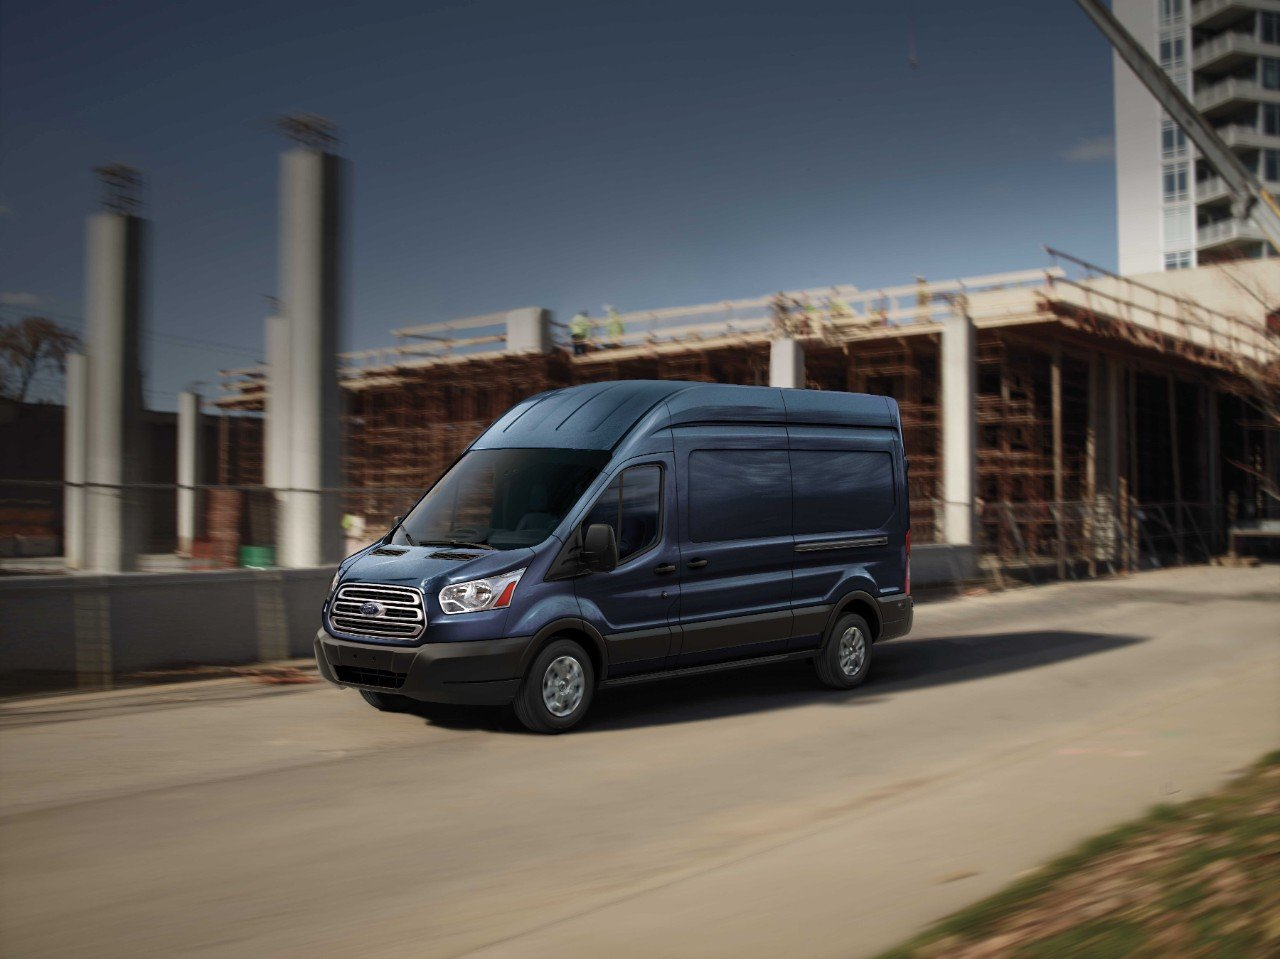 Ford Recalls Transits for Fuel Injection Pumps